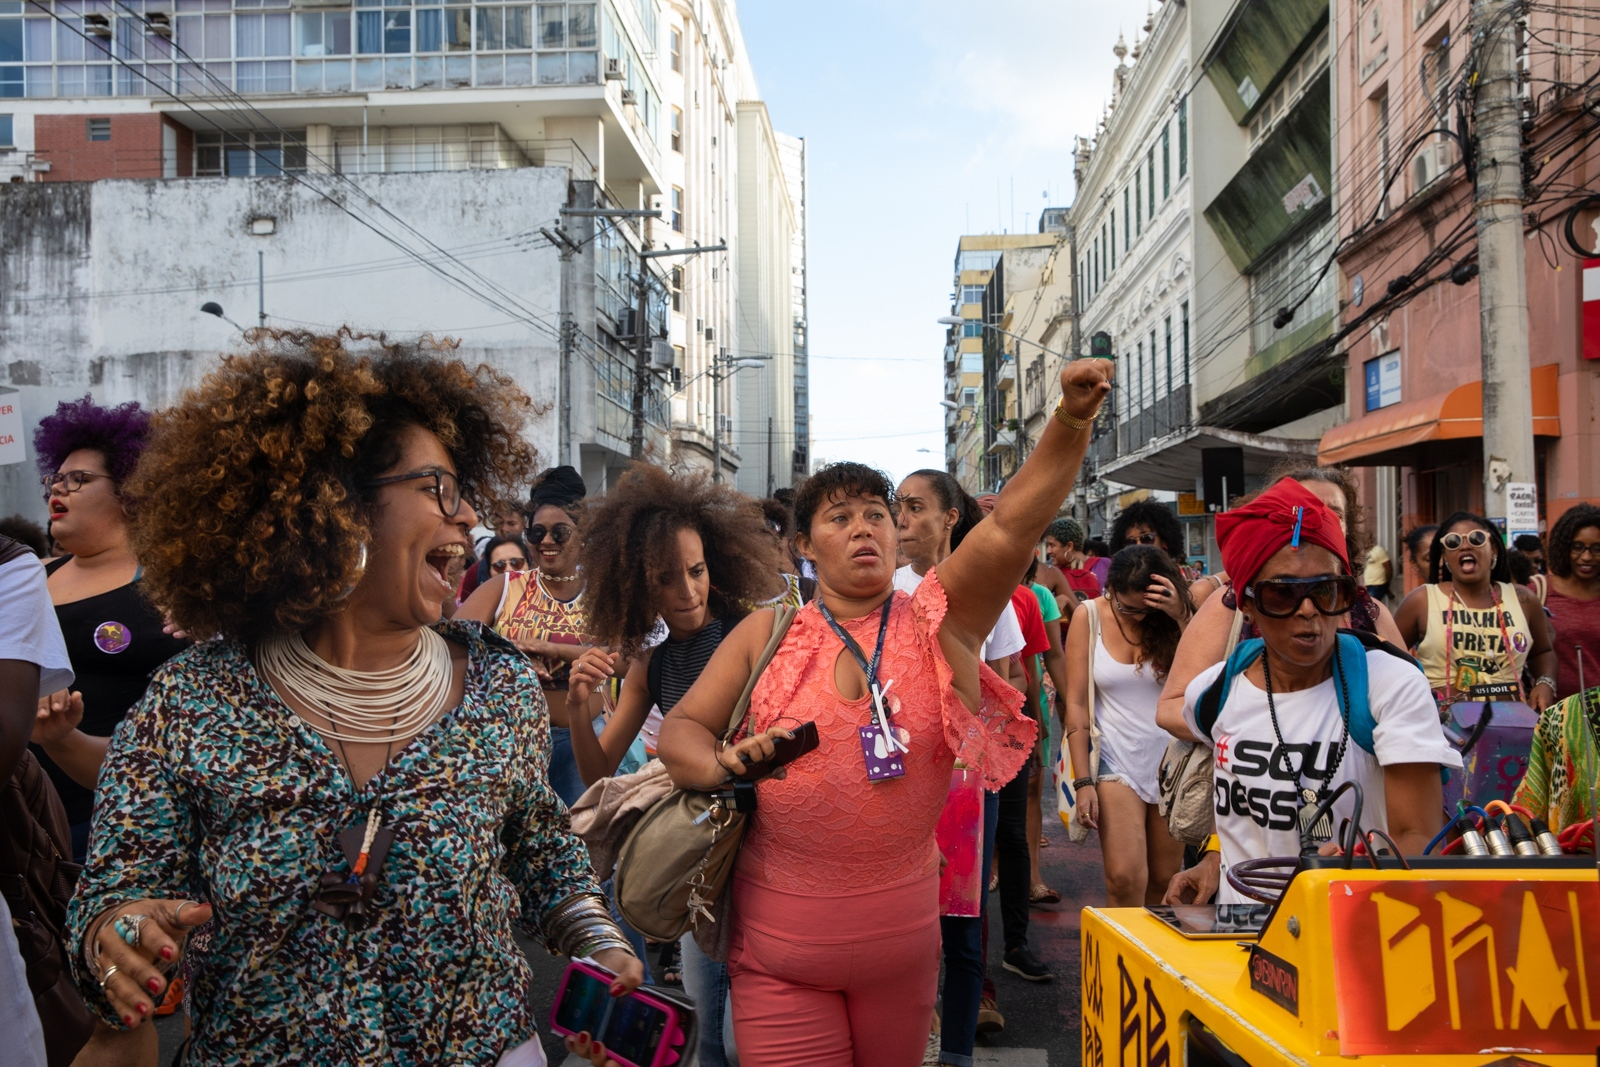 """Women at the march for the International Day of the Black Latin American and Caribbean Women organised each 25th July together with the """"Mês das Pretas"""" (Month for the Black Women) in Salvador, Bahia. The Afro-feminism and feminism in Salvador is growing strongly and mouvements, events, conferences, activities are happening frequently in town. Last year, a turning point for the feminist militants and one of the most significant event for the mouvements in Brazil, was the Angela Davis conference talk at University of Bahia, whose visit gathered hundred of women."""